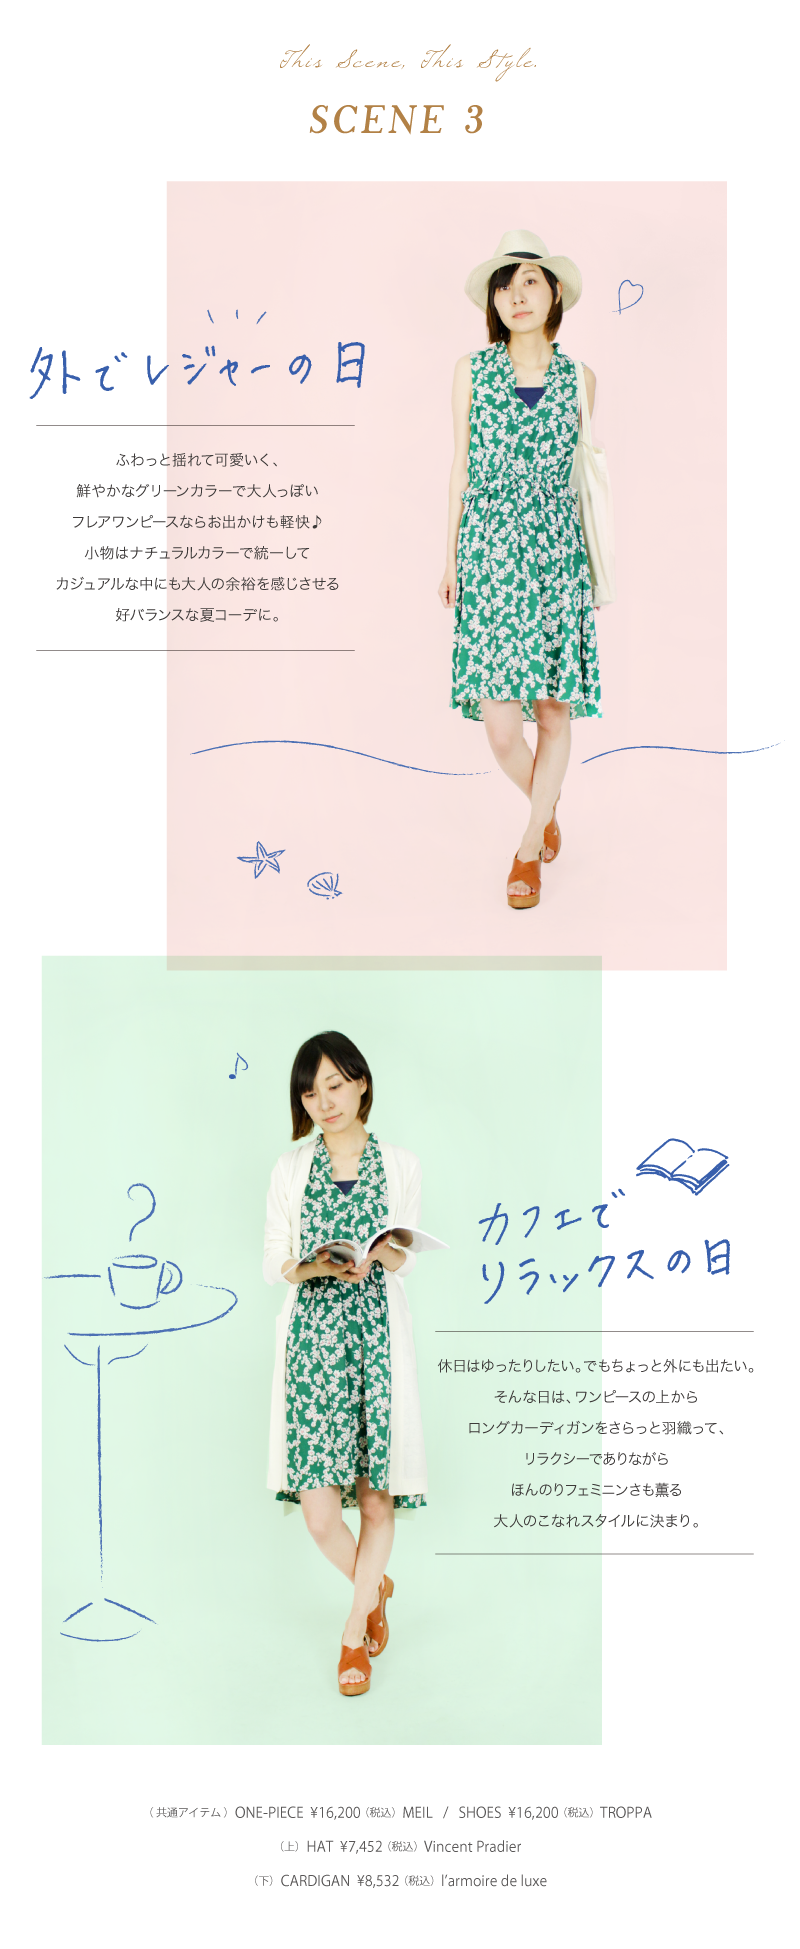 ac-RC_160602_all-weather-styles_vol2_s03.png